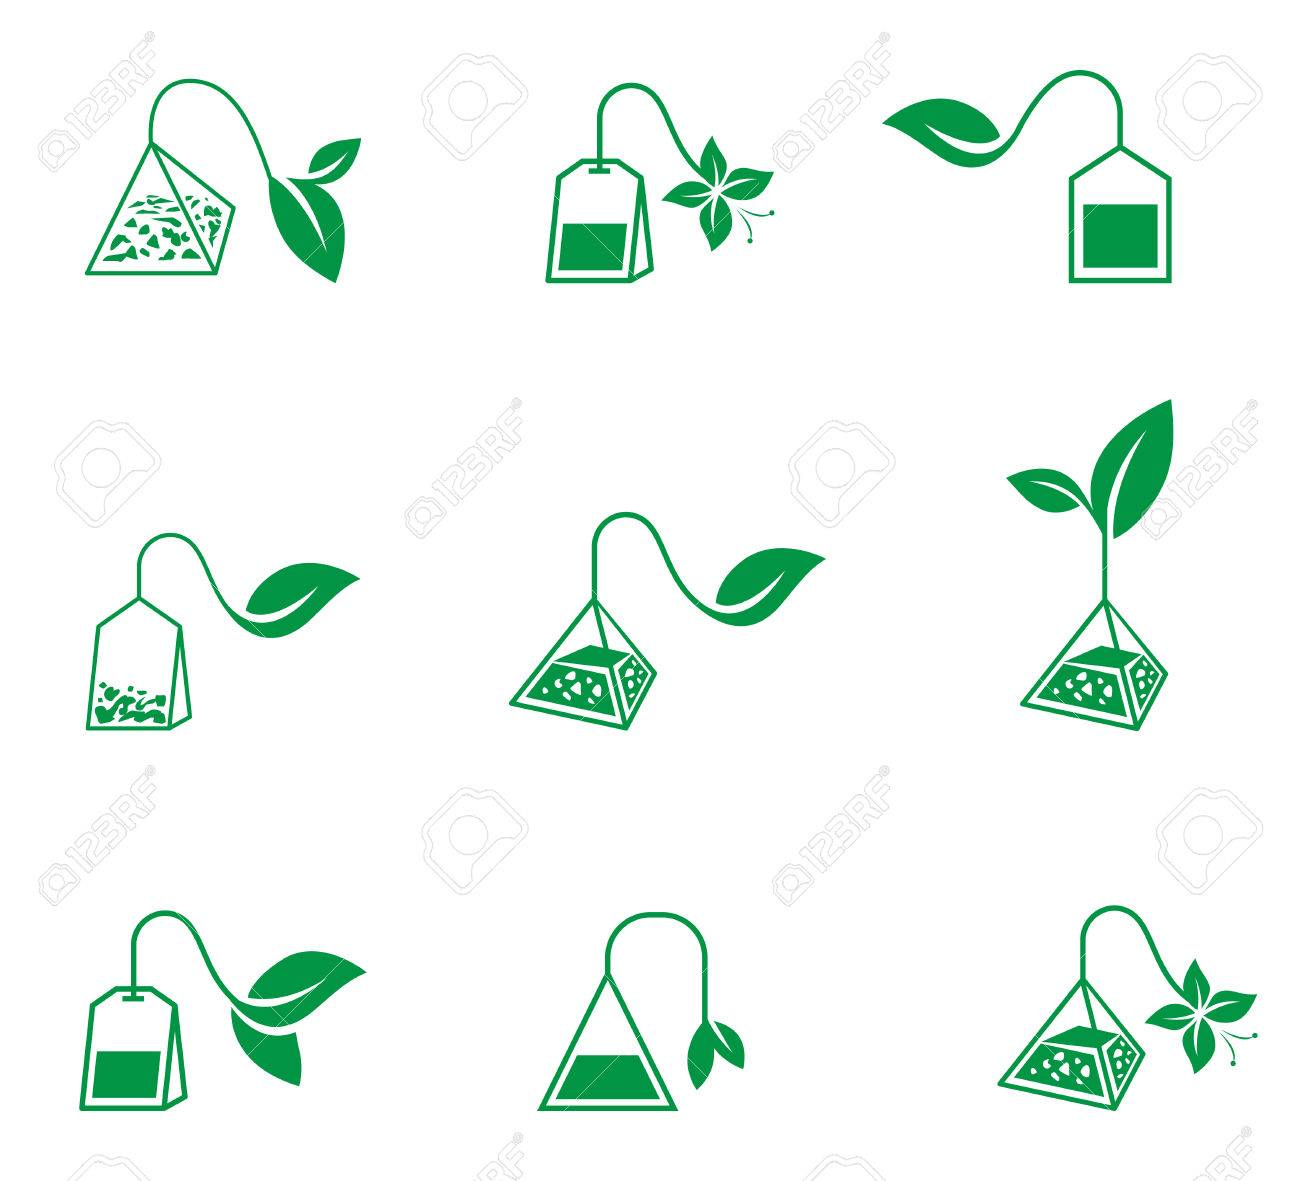 Tea ceremony. Vector icons on a white background. - 70973166